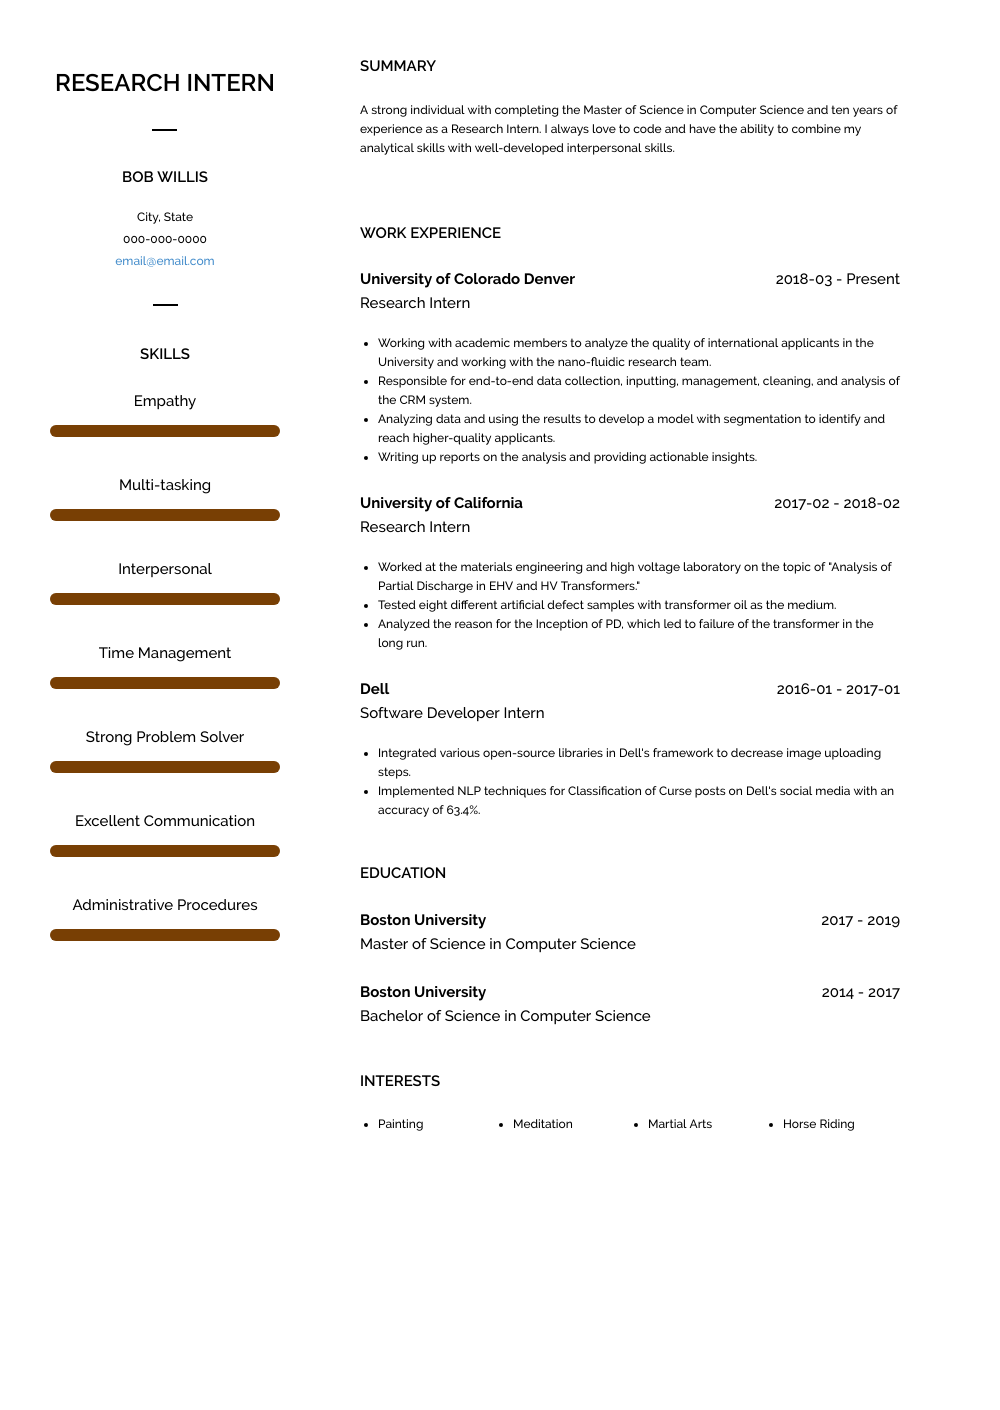 Research Intern - Resume Samples and Templates | VisualCV